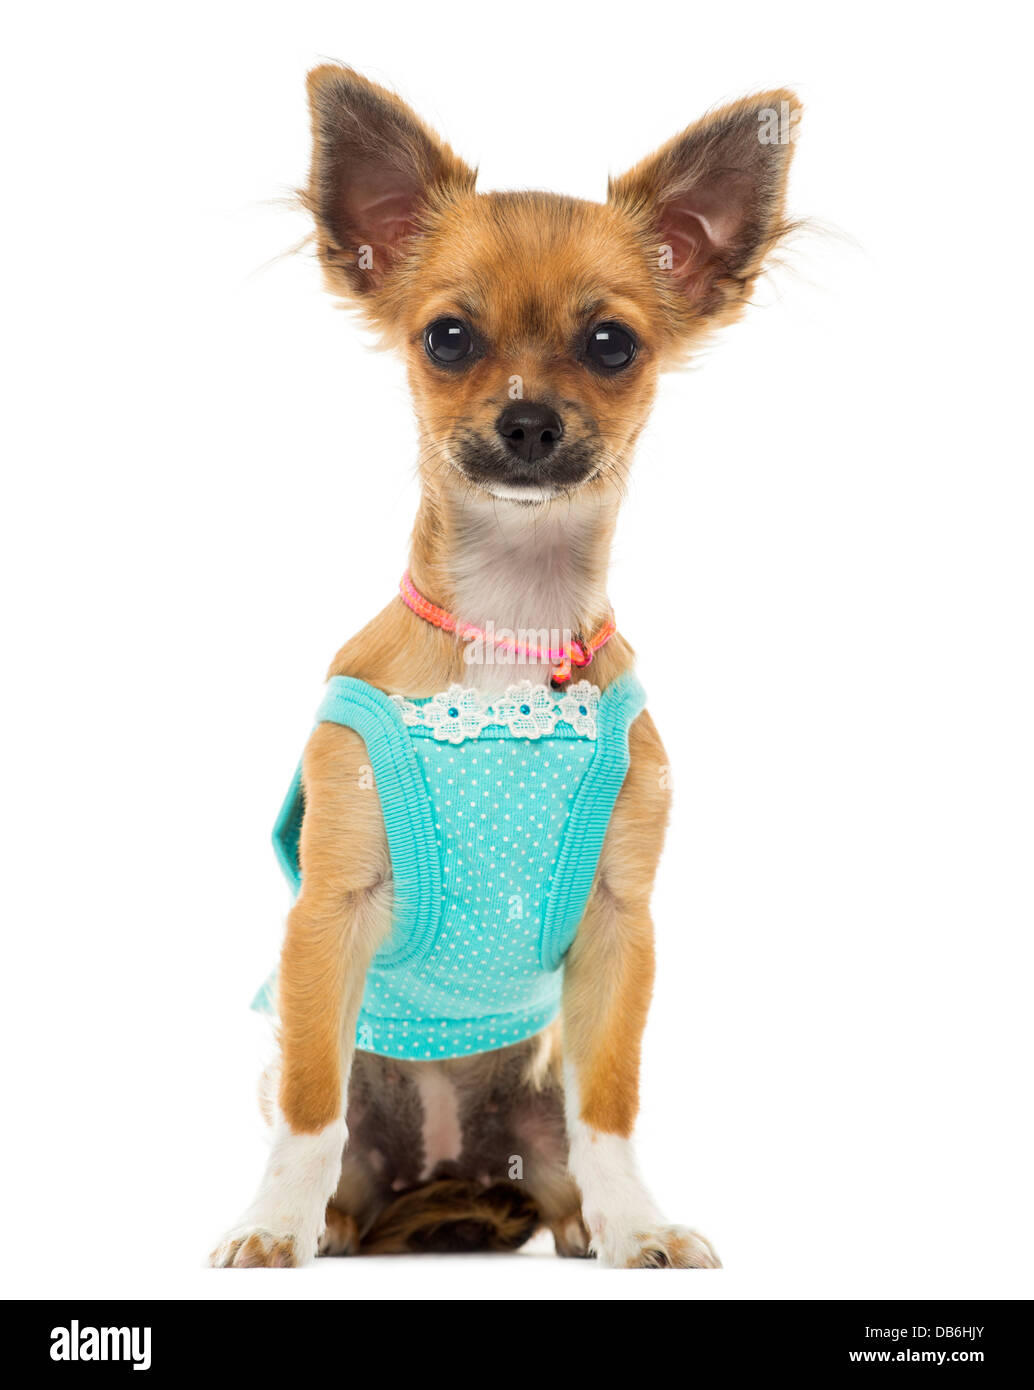 Dressed up Chihuahua sitting against white background - Stock Image